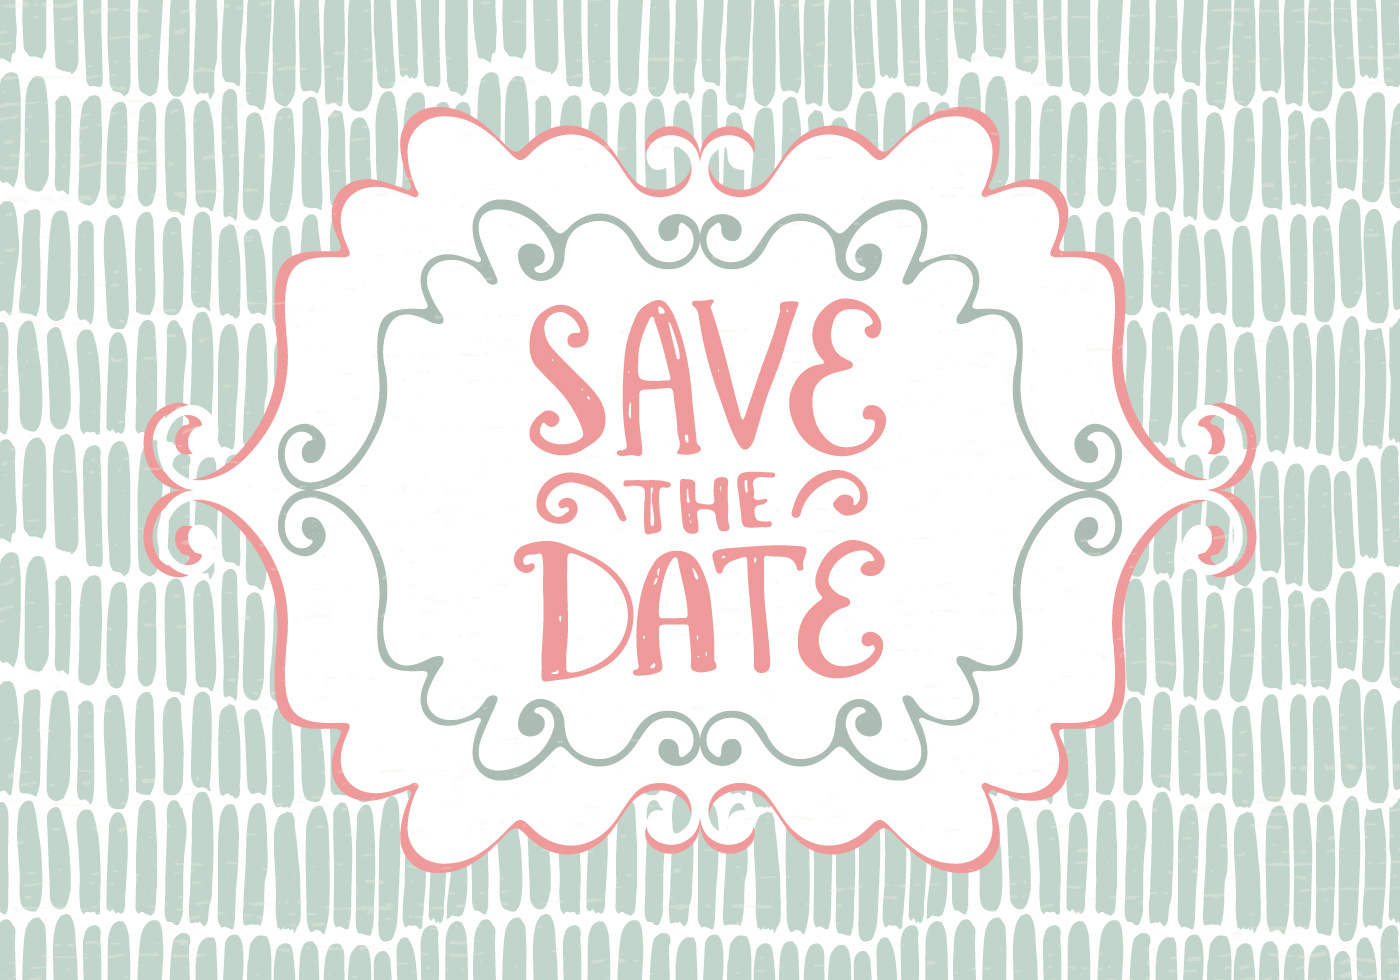 Drawn card graphic Save the — Date Graphic